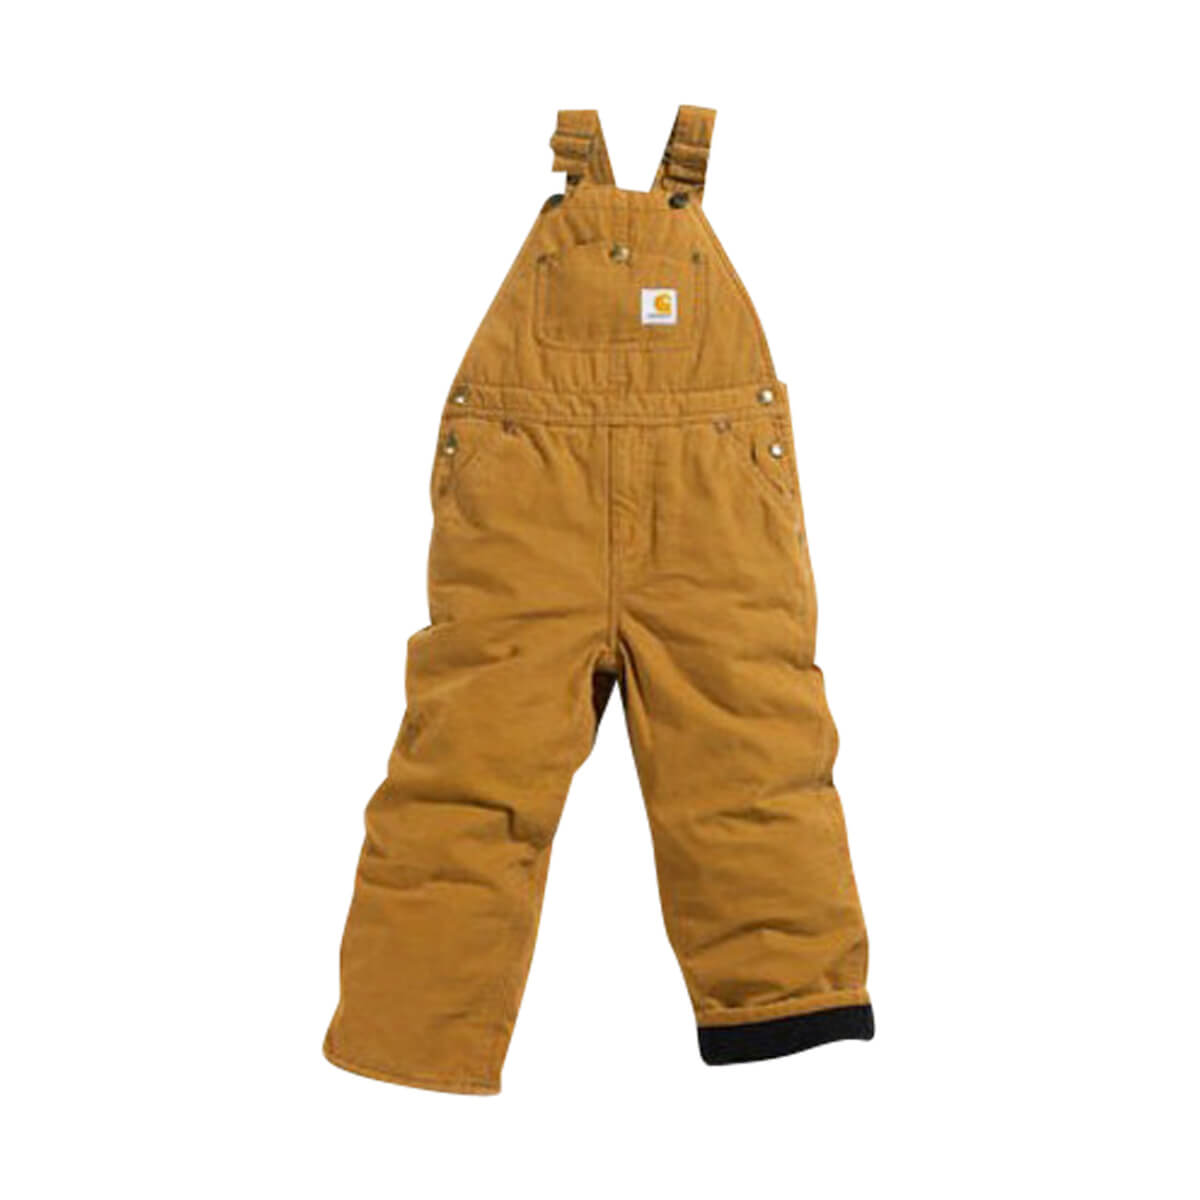 Children's Carhartt Lined Duck Overalls